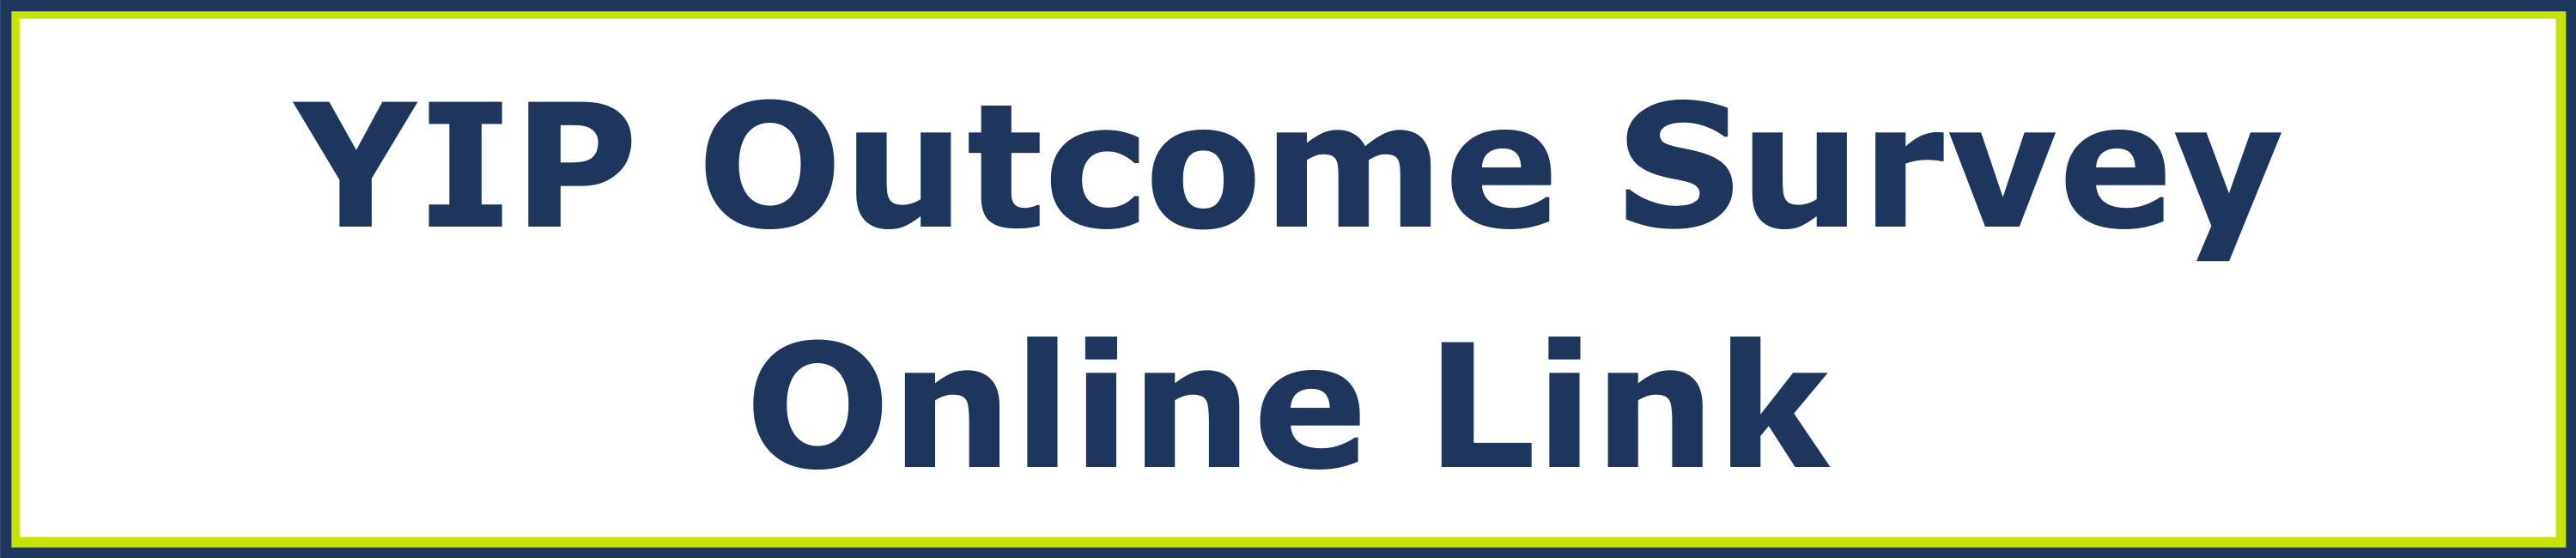 YIP outcome survey online link.